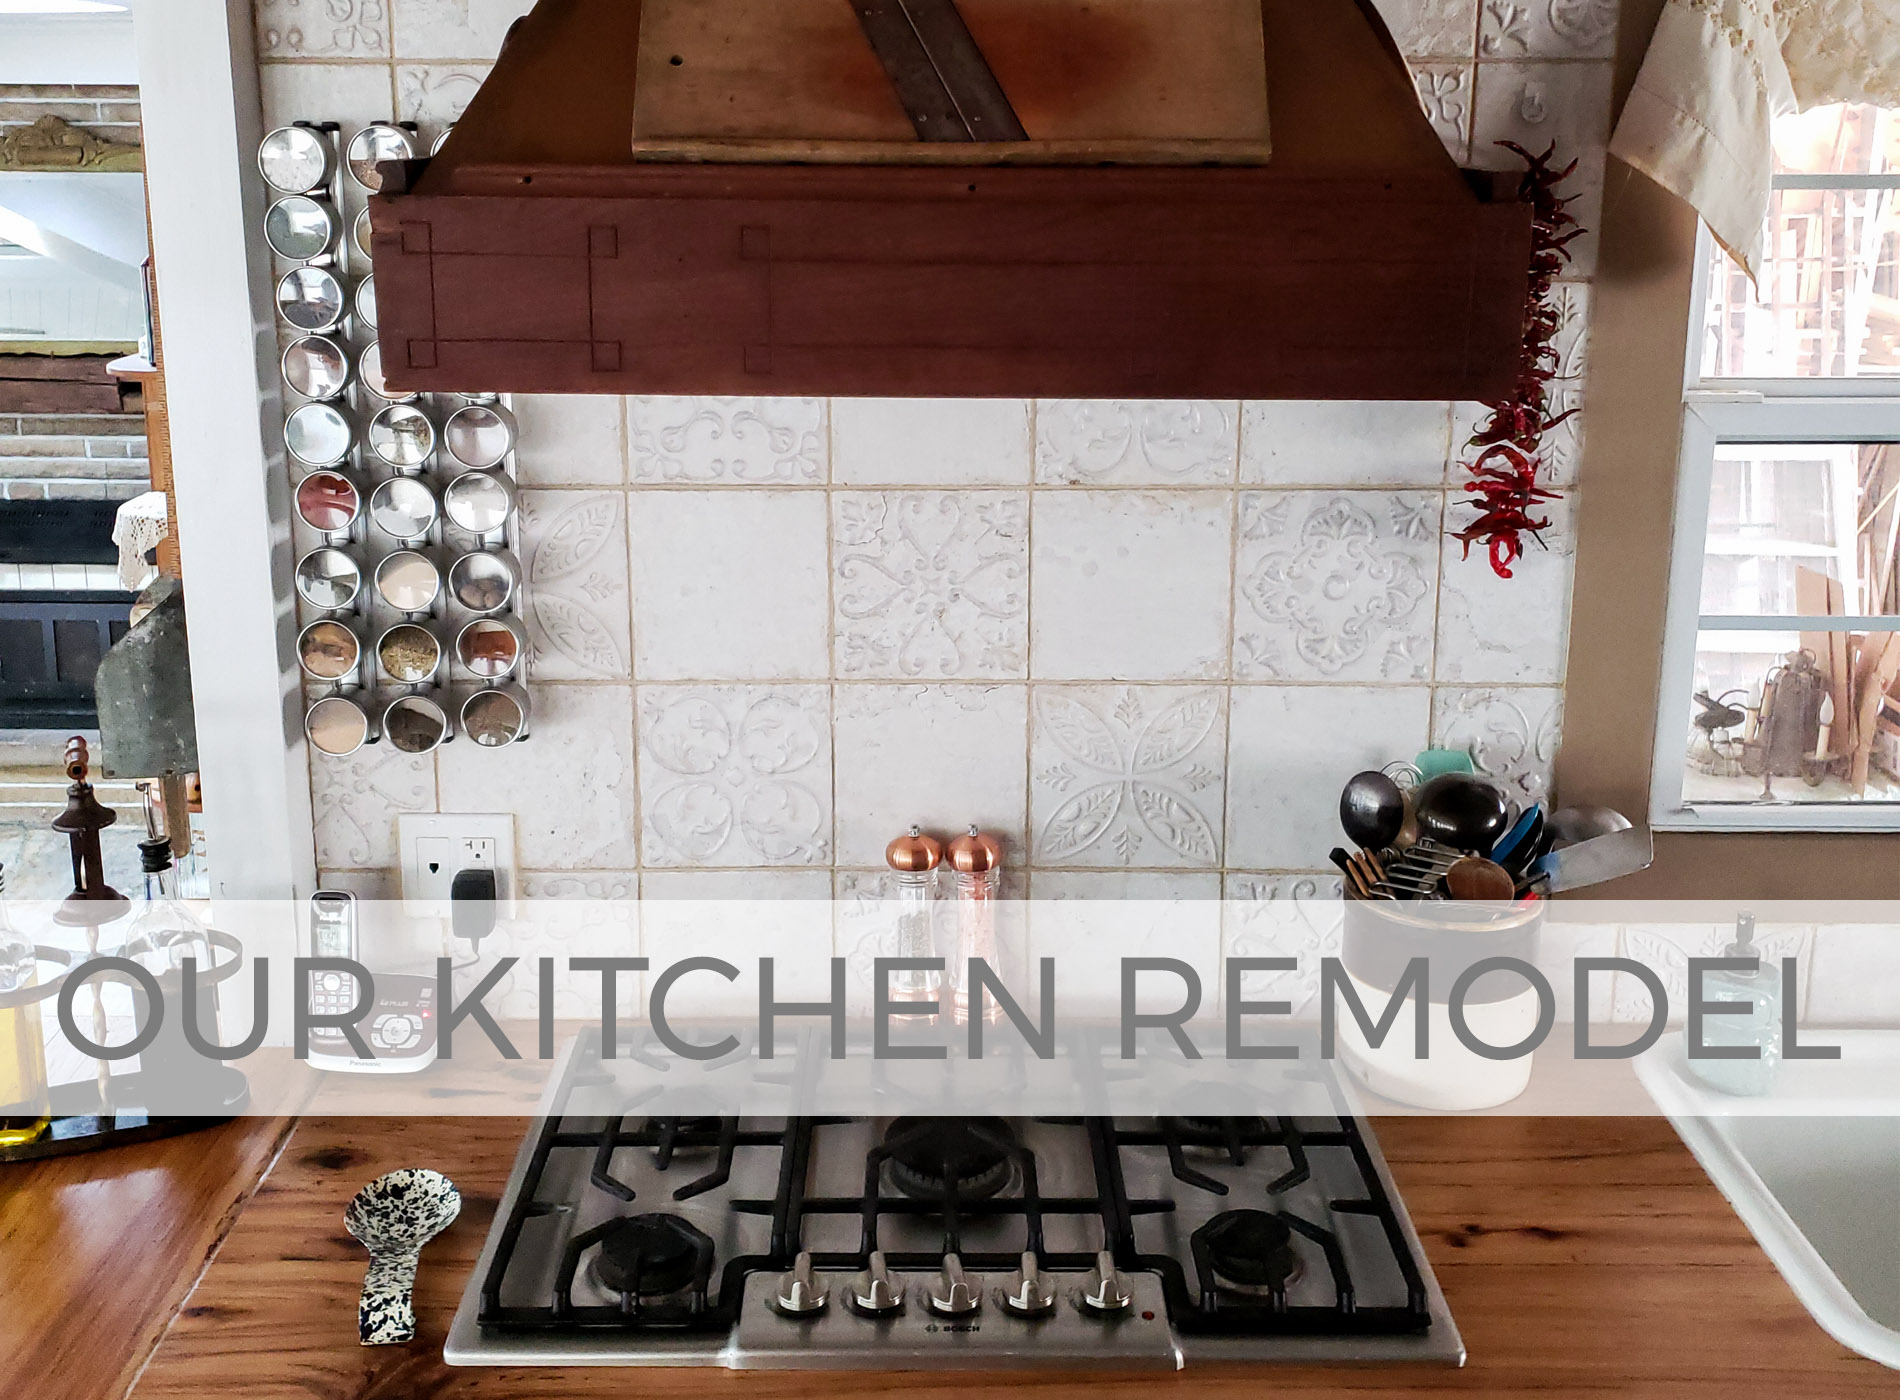 Our farmhouse kitchen remodel reveal with video tour at Prodigal Pieces | prodigalpieces.com #prodigalpieces